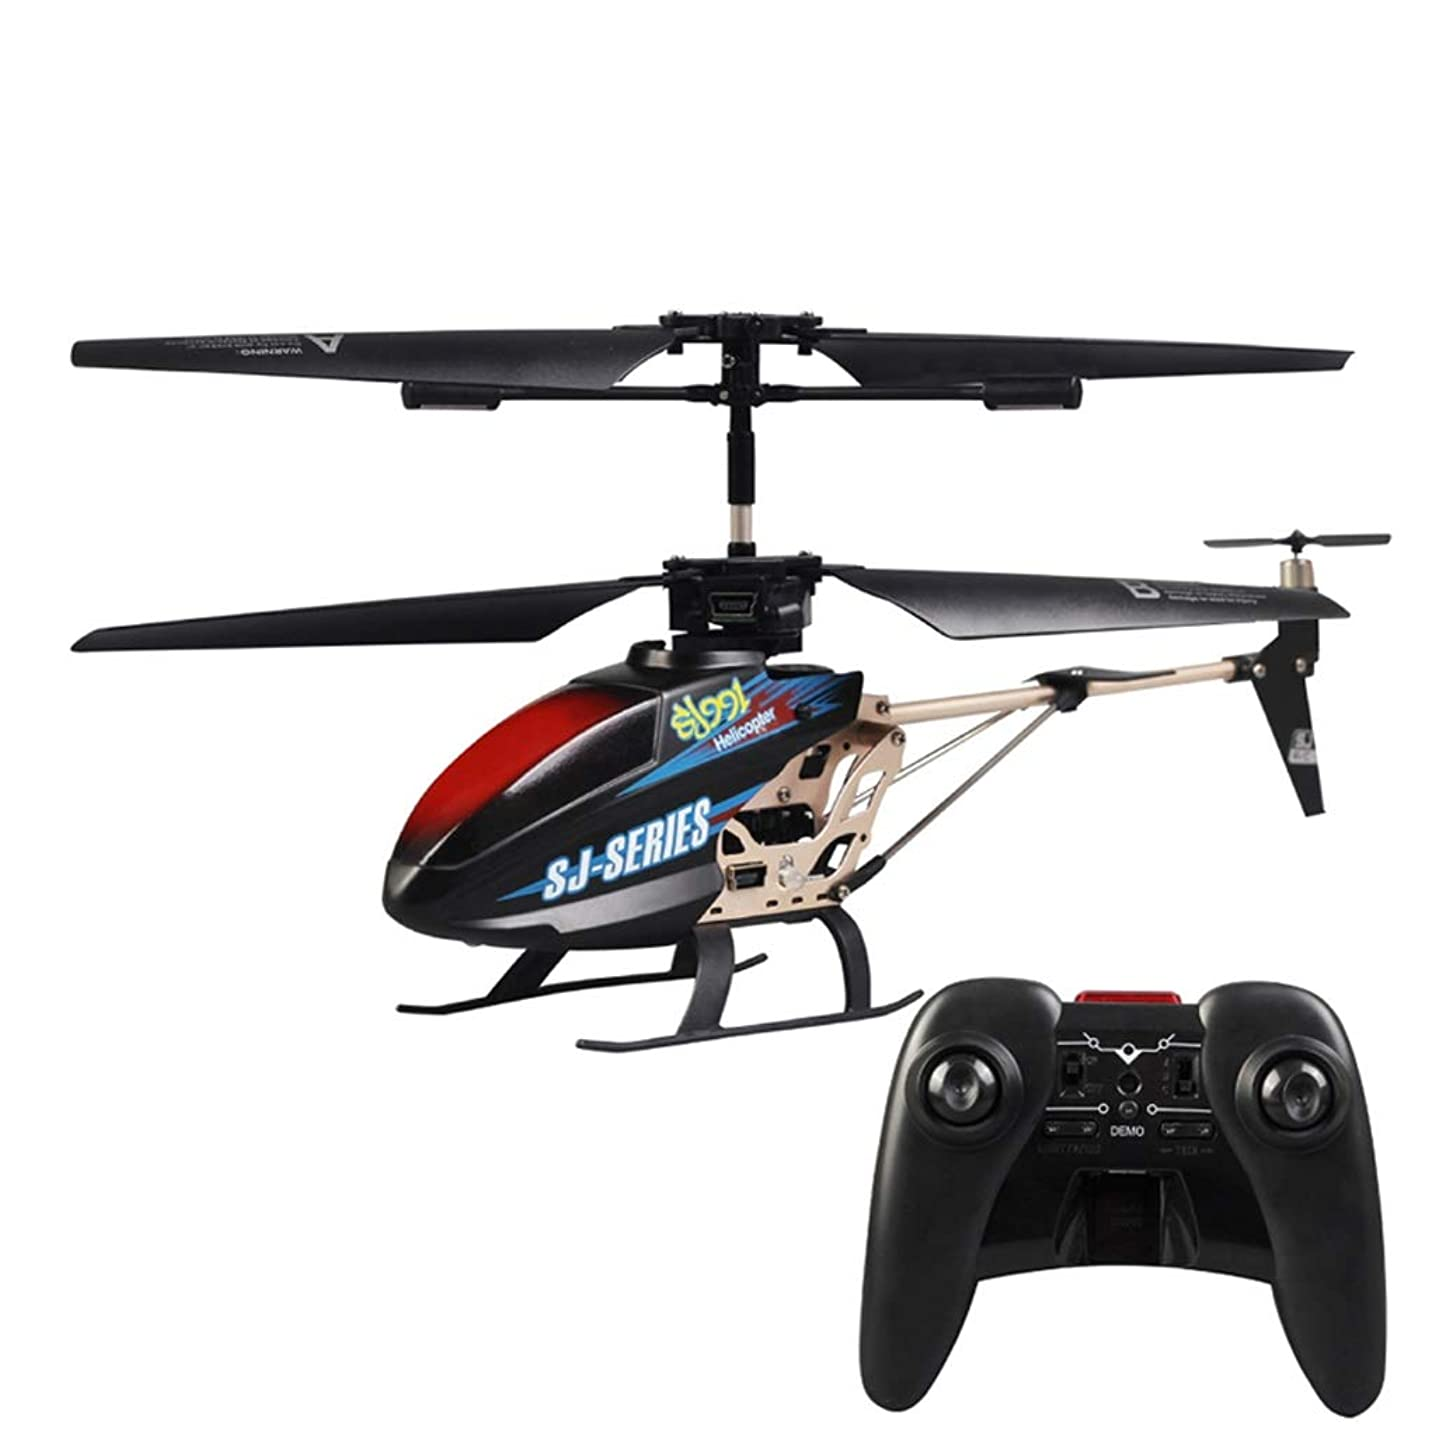 3.5 Channel Remote Control Helicopter, Infrared Remote Control, Alloy Casing Remote Control Aircraft, LED Lights for Anti-Collision Helicopter Remote Control Drone Toy Gifts (Color : 2)